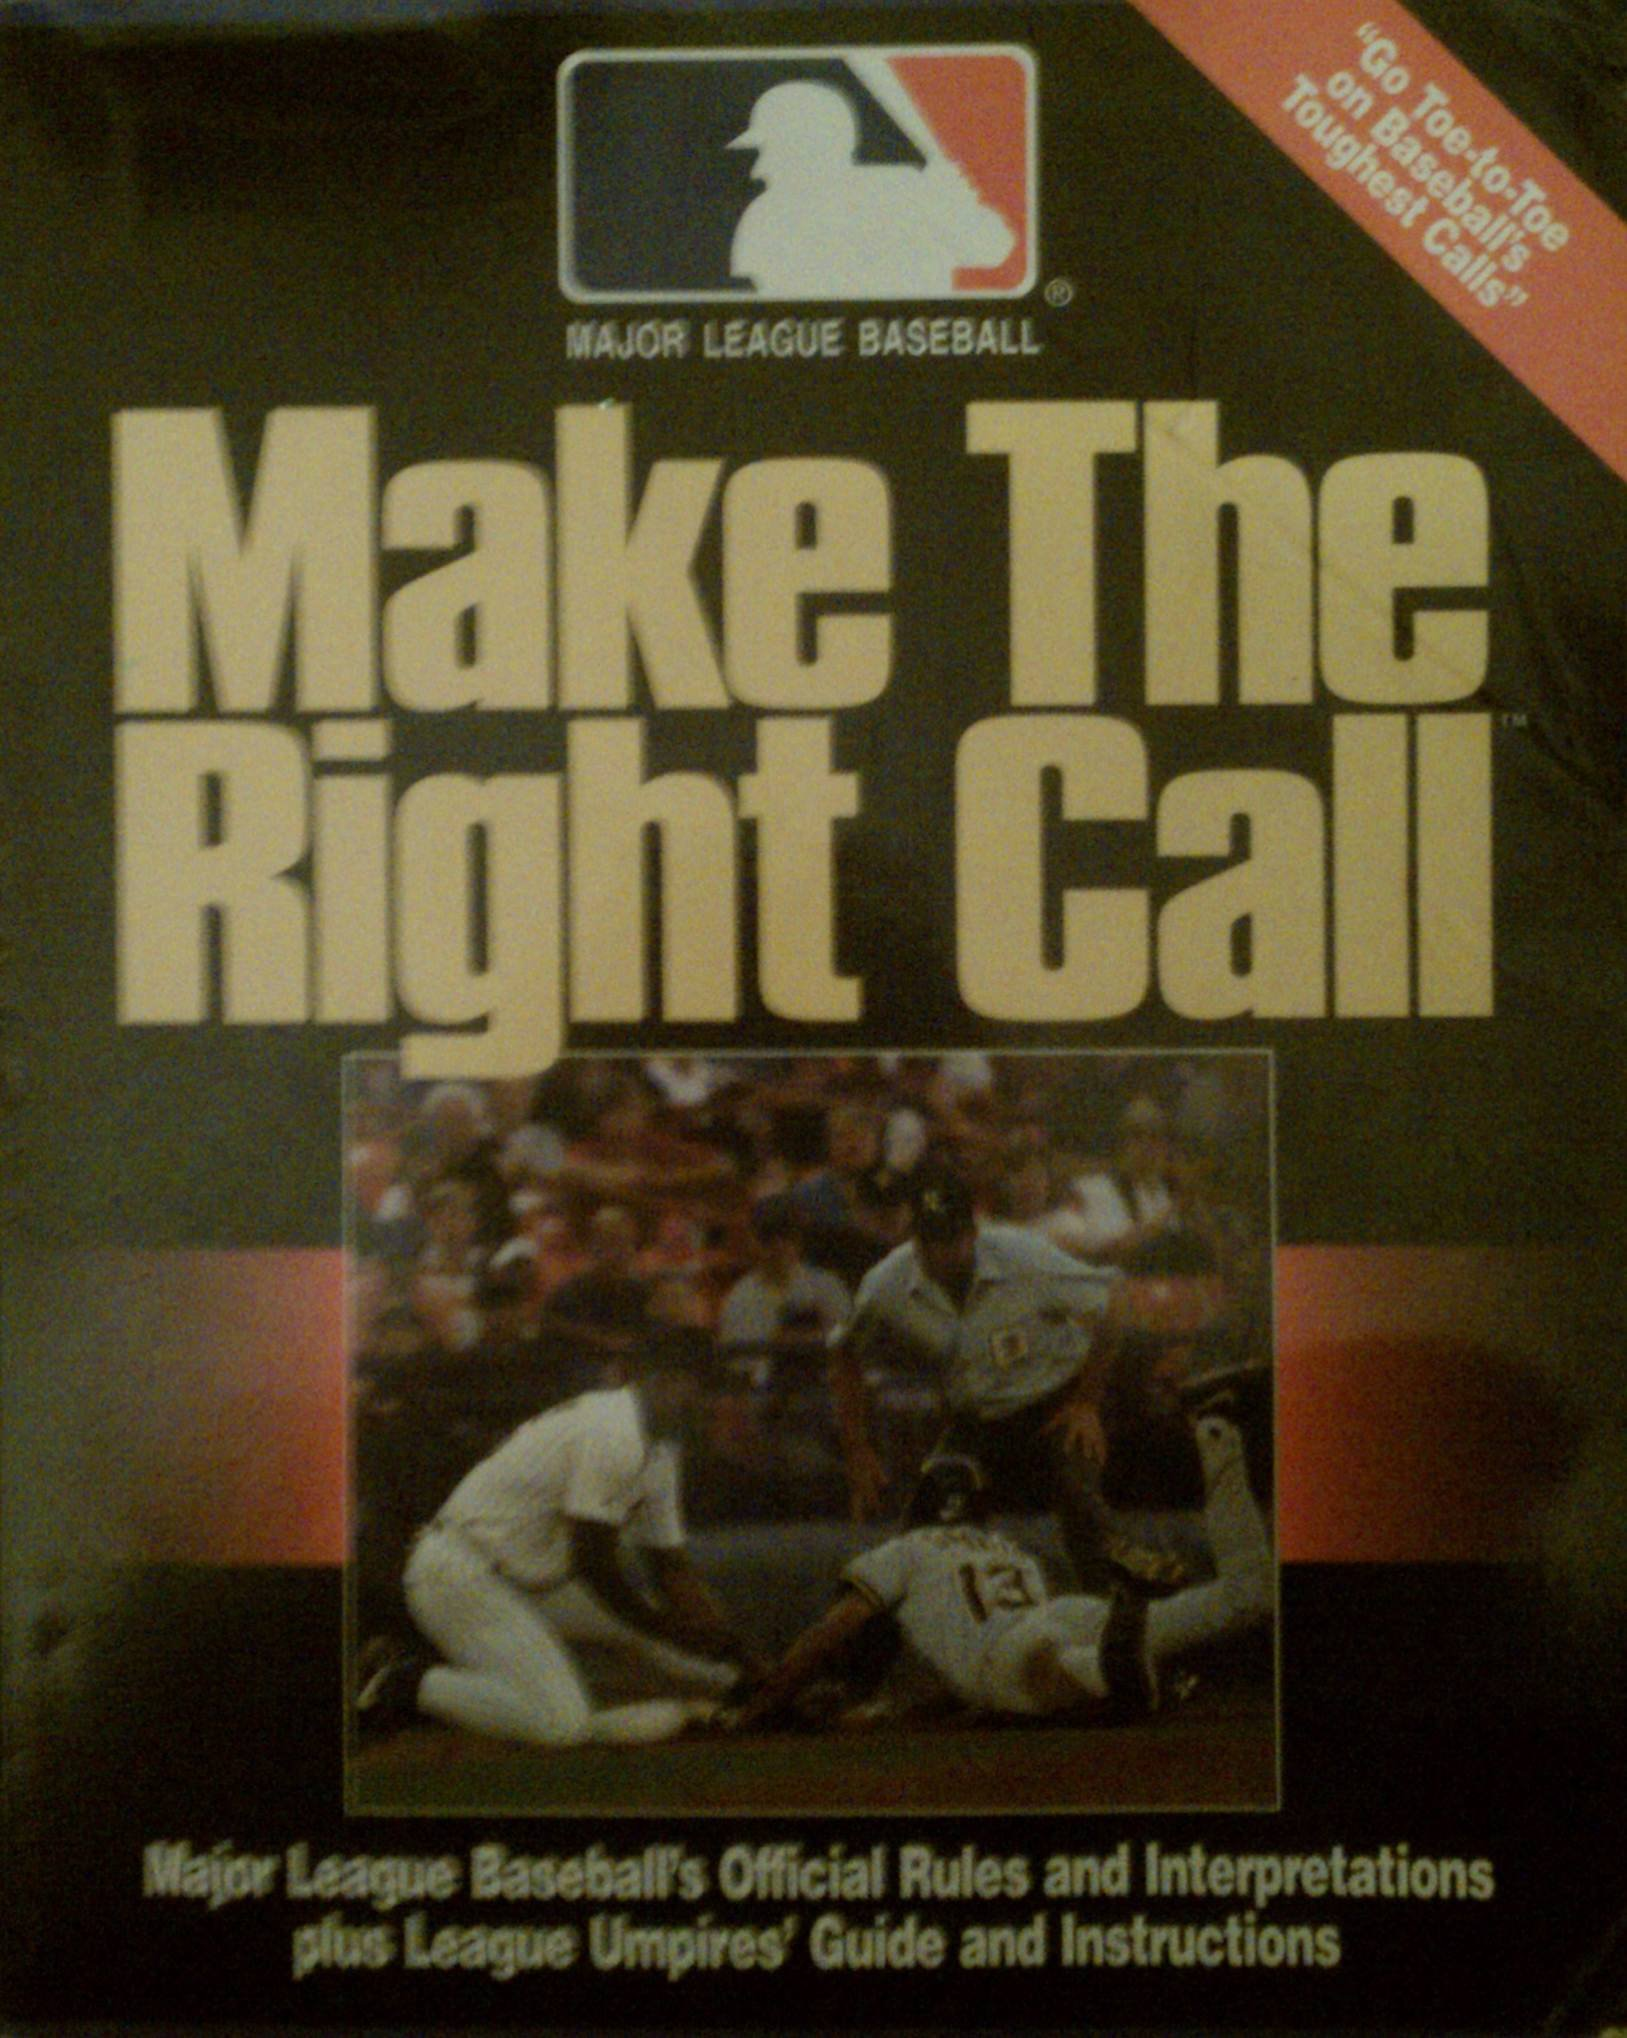 Make the Right Call/Major League Baseball's Official Rules and Interpretations Plus League Umpires' Guide and Instructions by Brand: Triumph Books